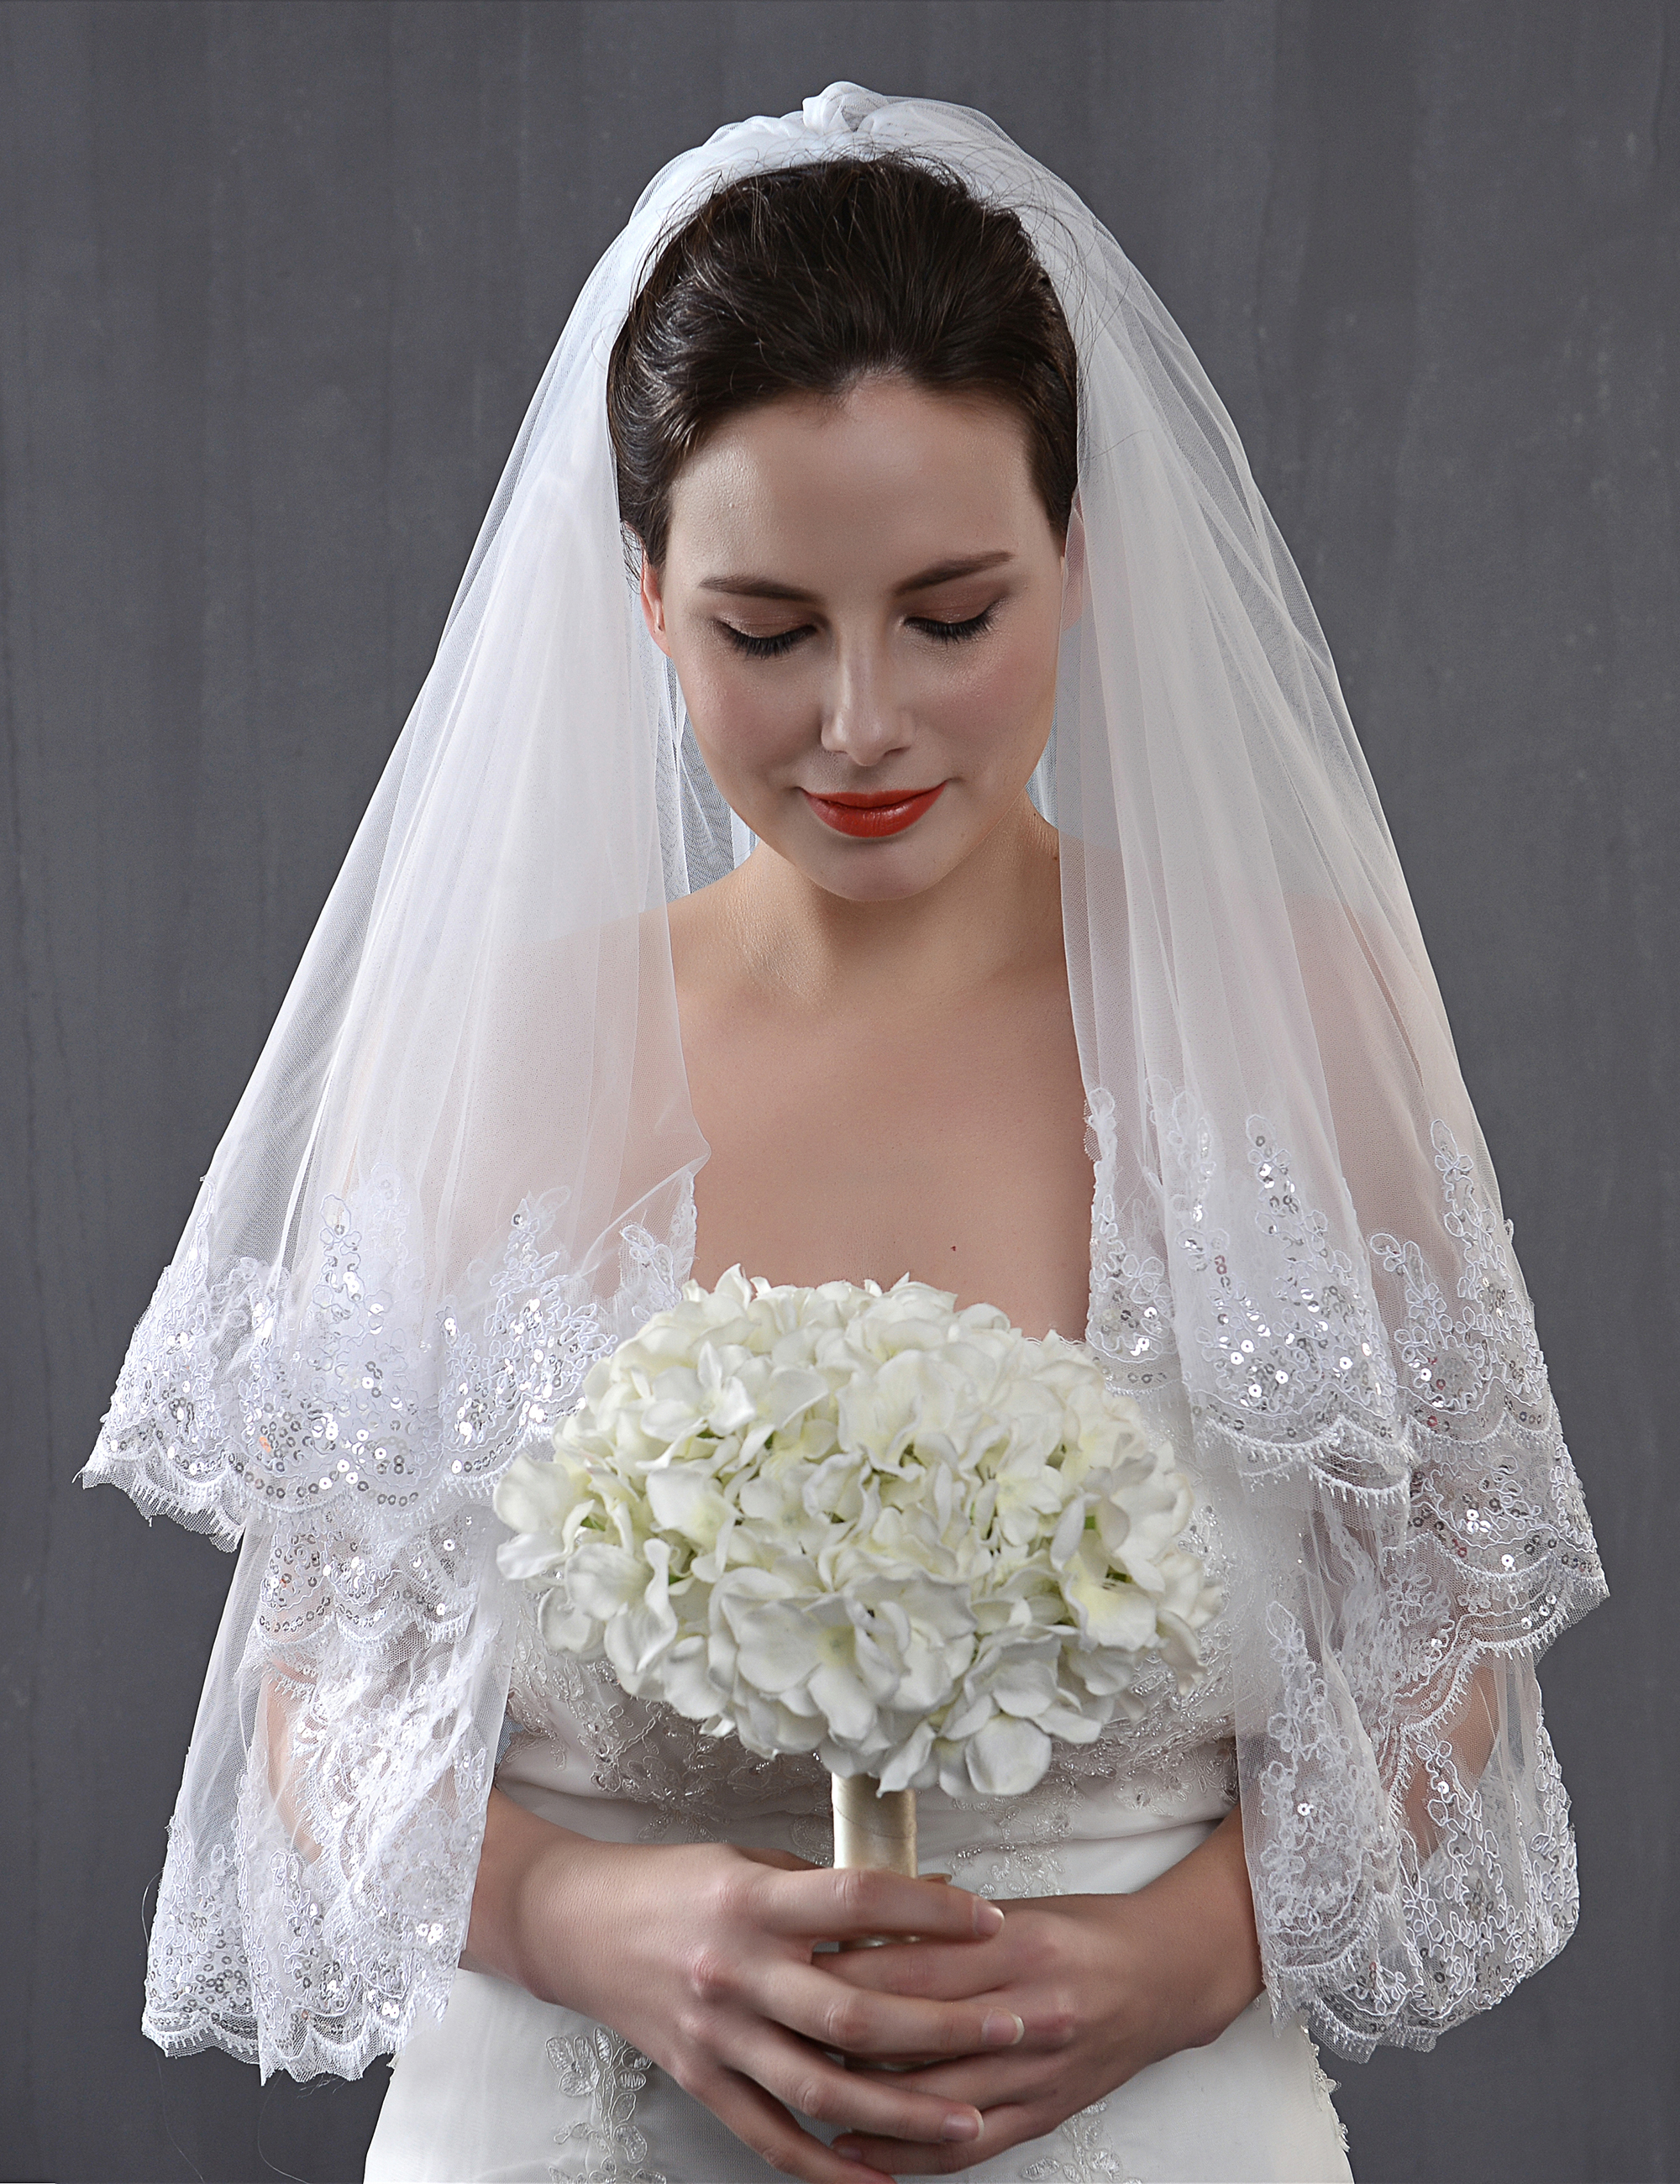 2 Tiers Sequin Fingertip Length Wedding Veils Bridal Veils White Ivory With Comb Bling Shinny Lace